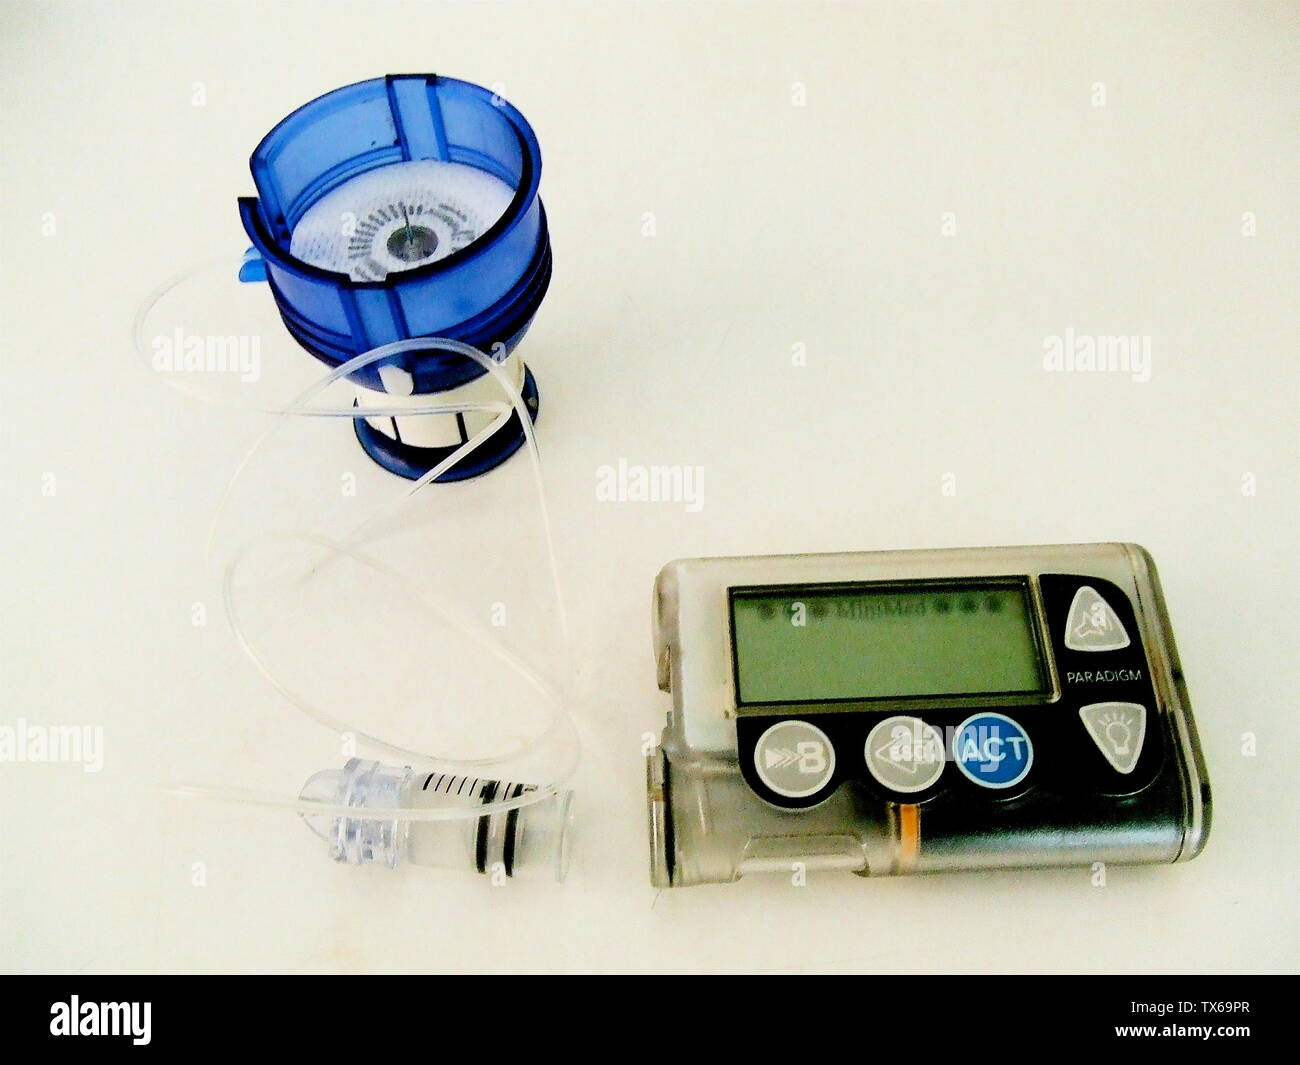 Medtronic Stock Photos & Medtronic Stock Images - Alamy